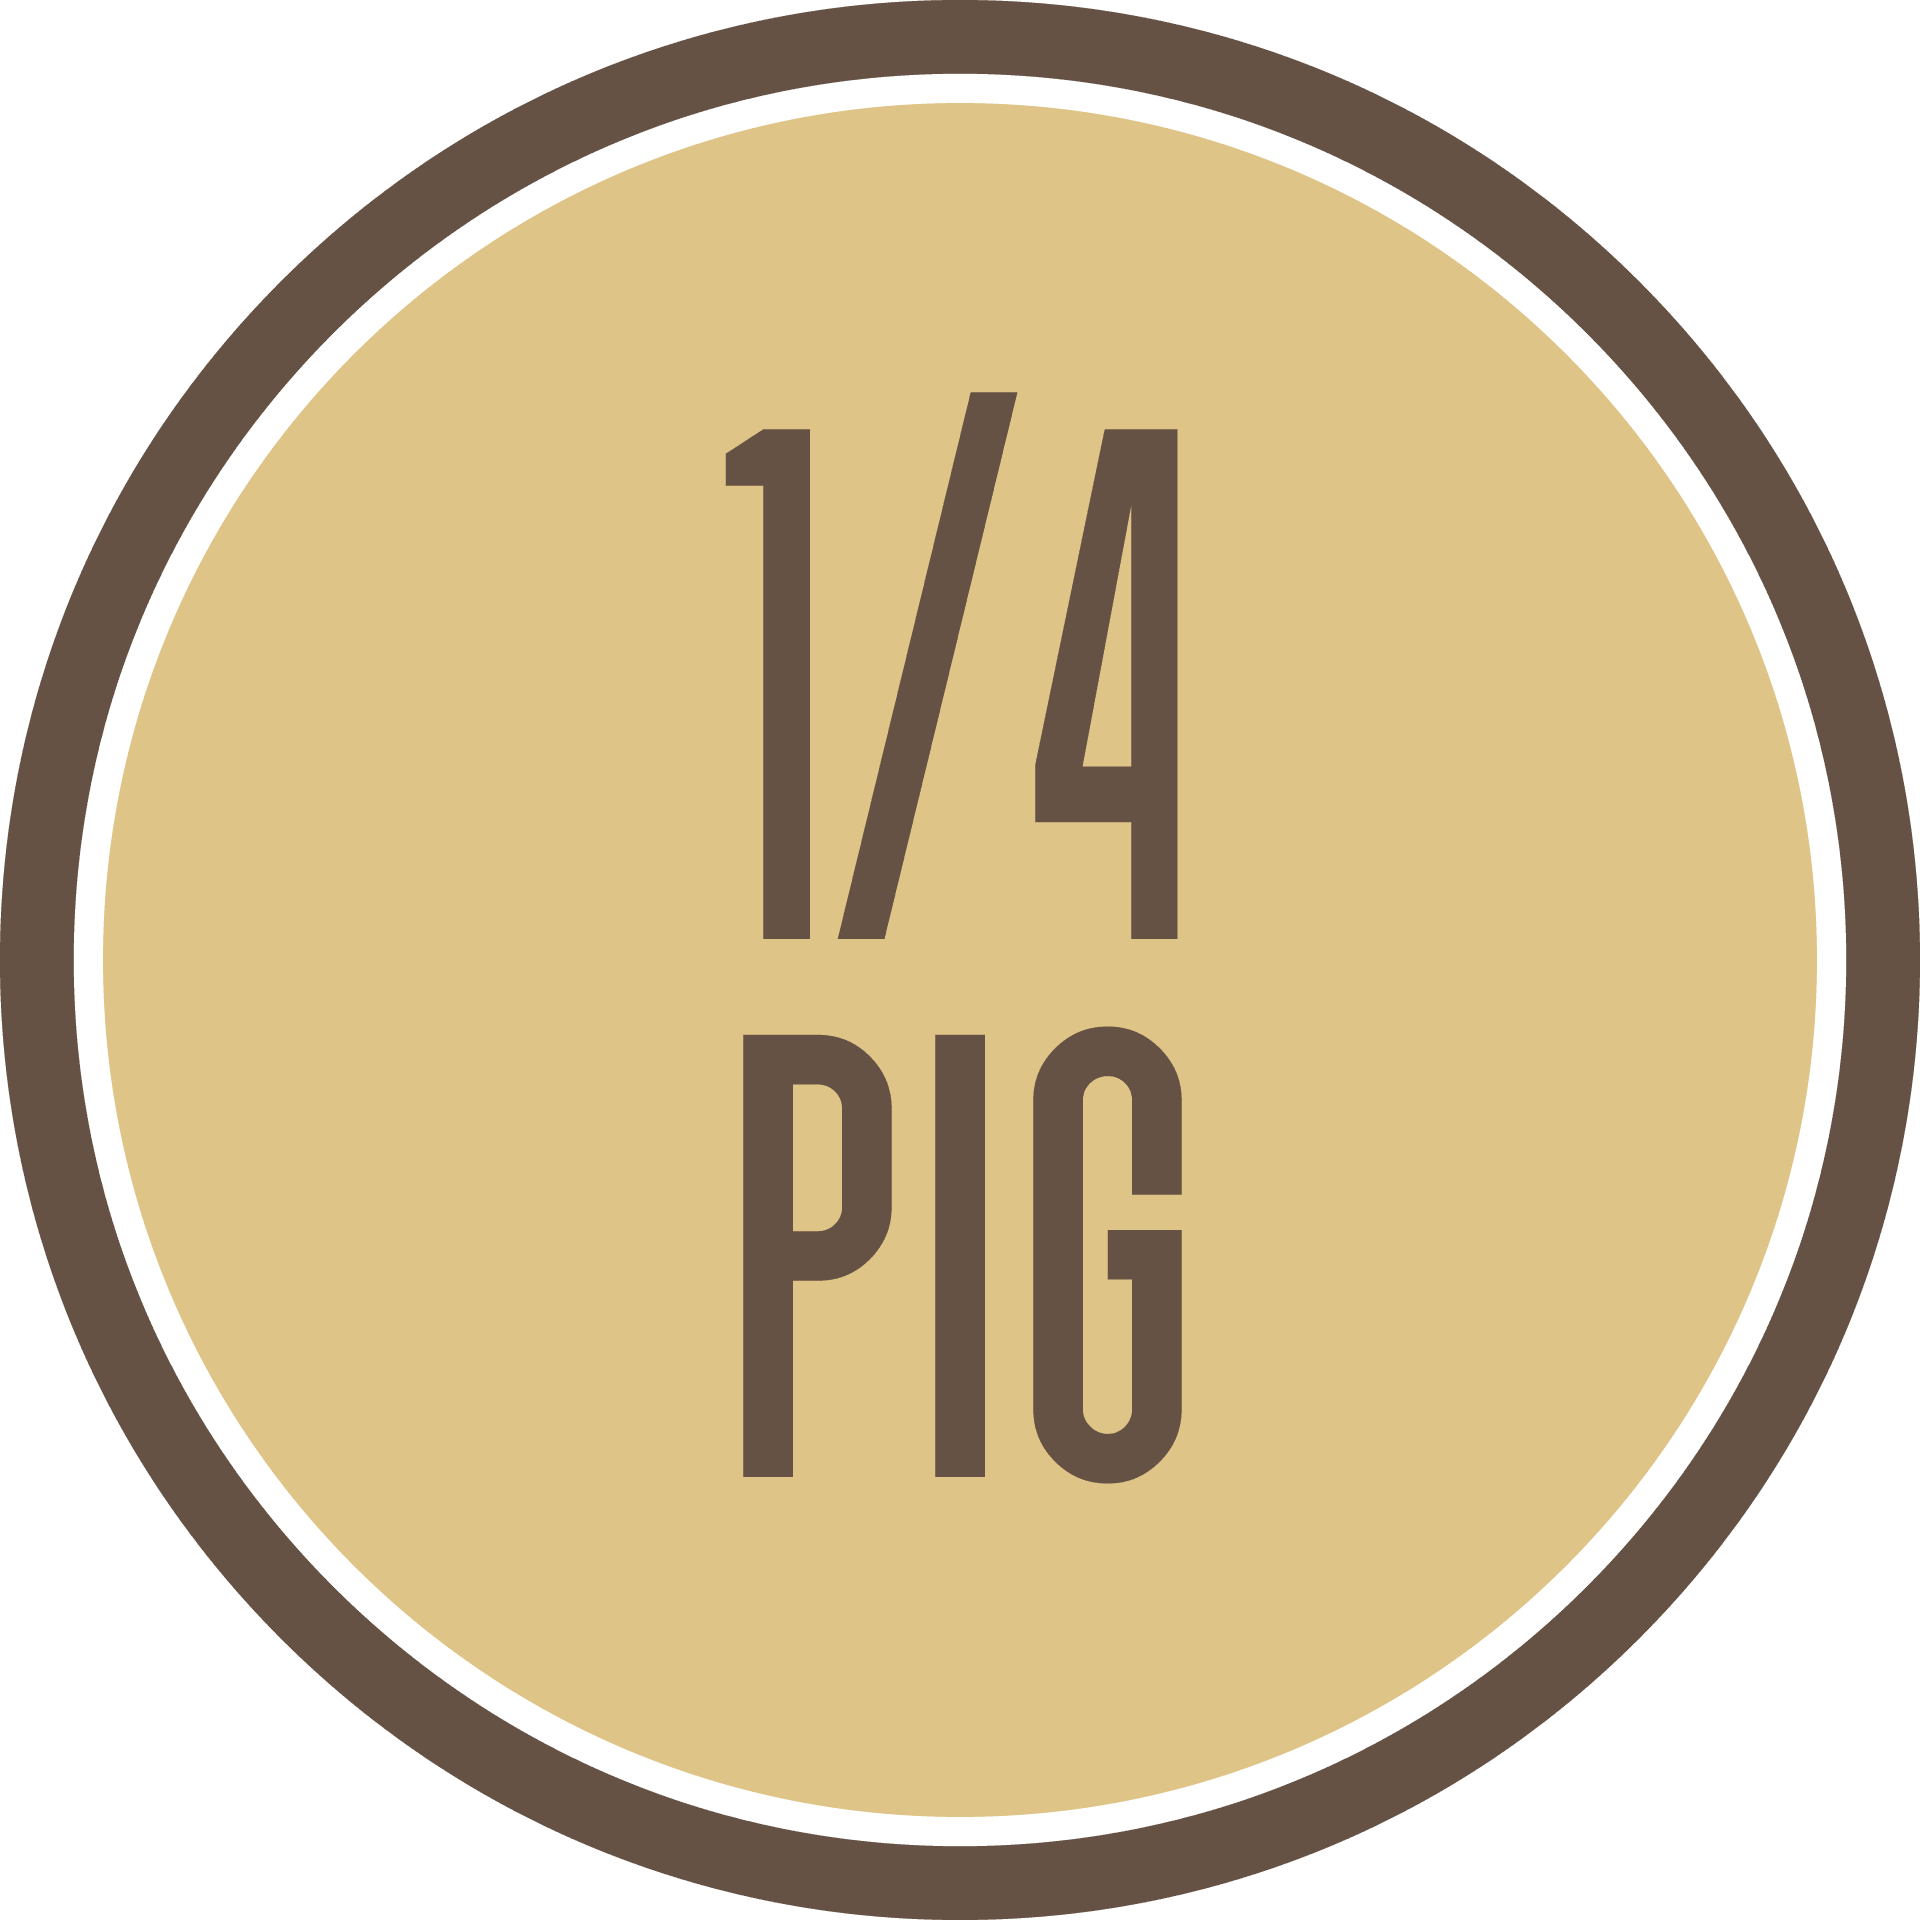 Quarter Pastured Heritage Pig - $449 all costs covered including Free Shipping